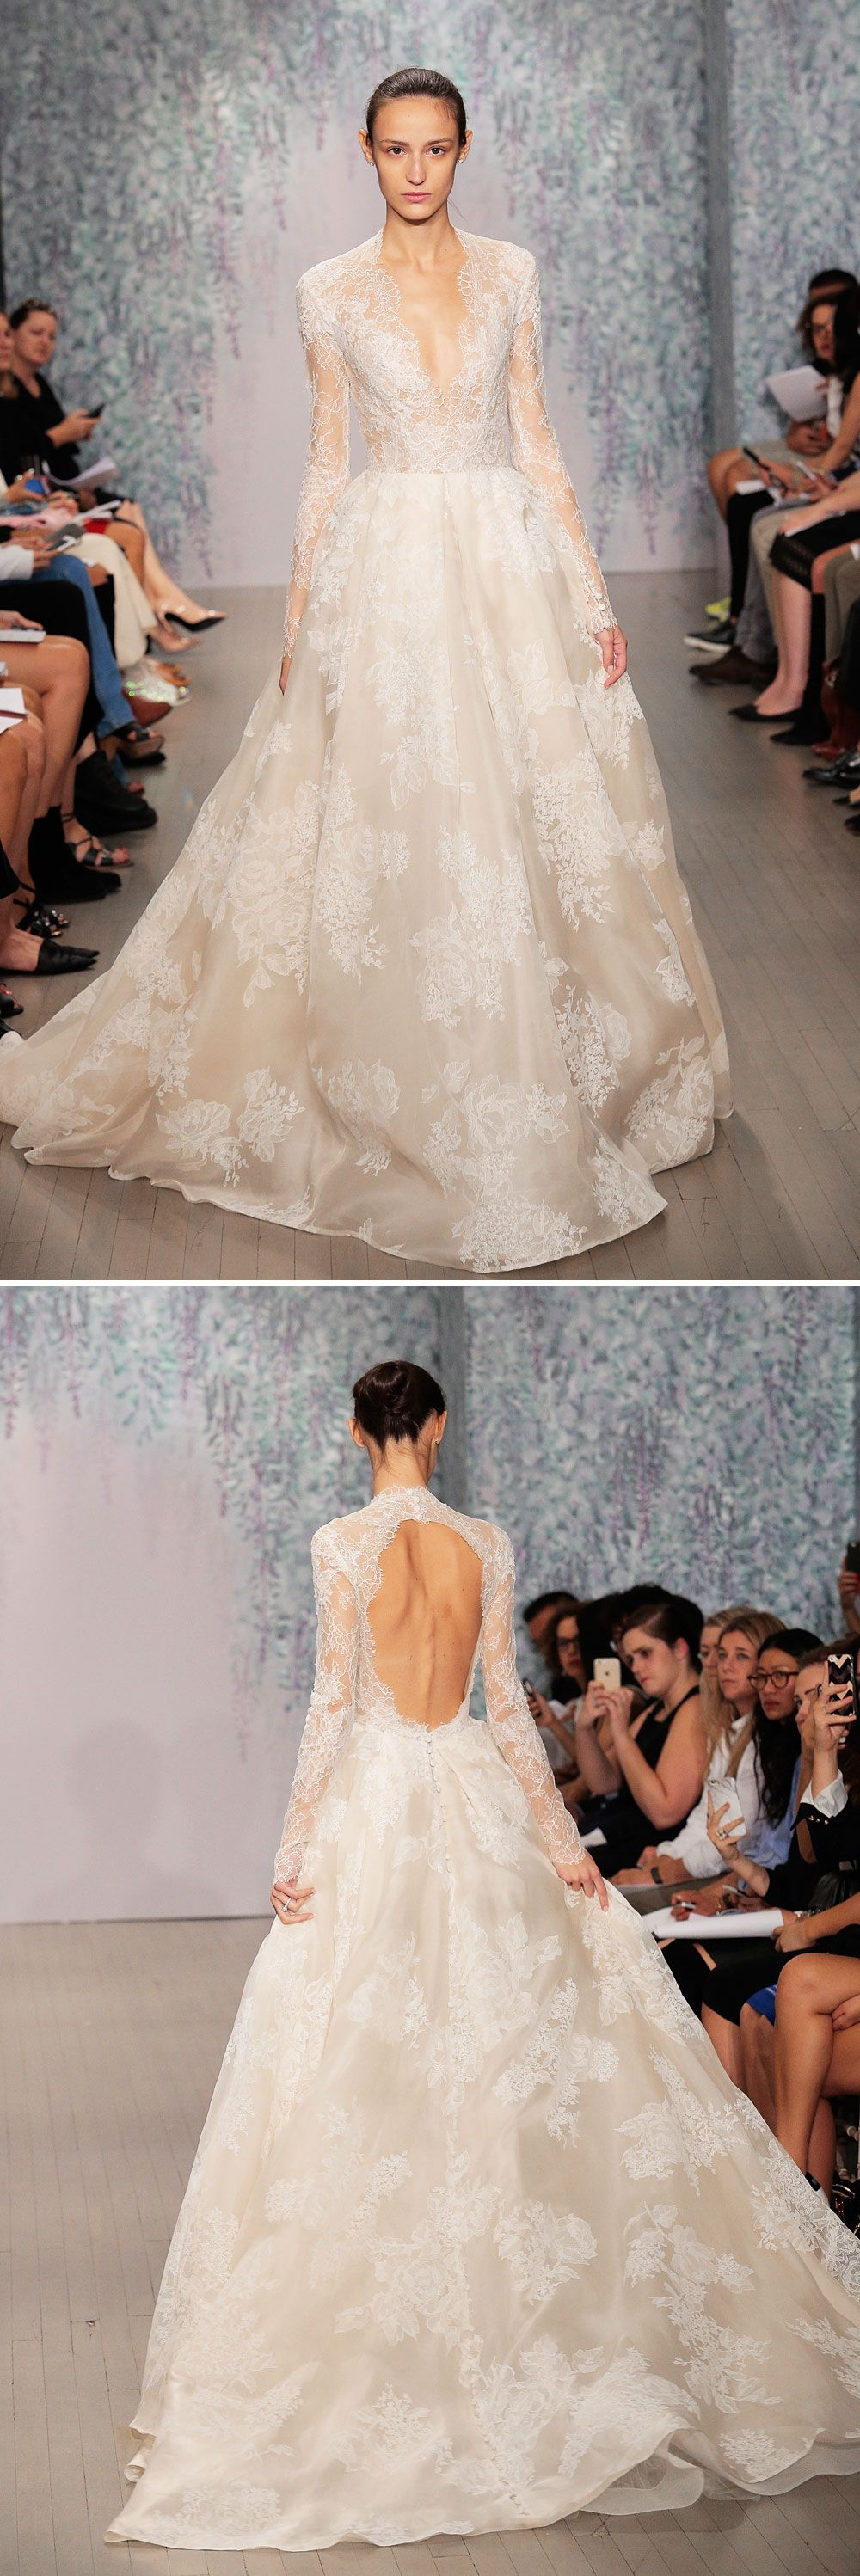 15 Wedding Gowns That Are Even More Gorgeous From the Back | Gowns ...